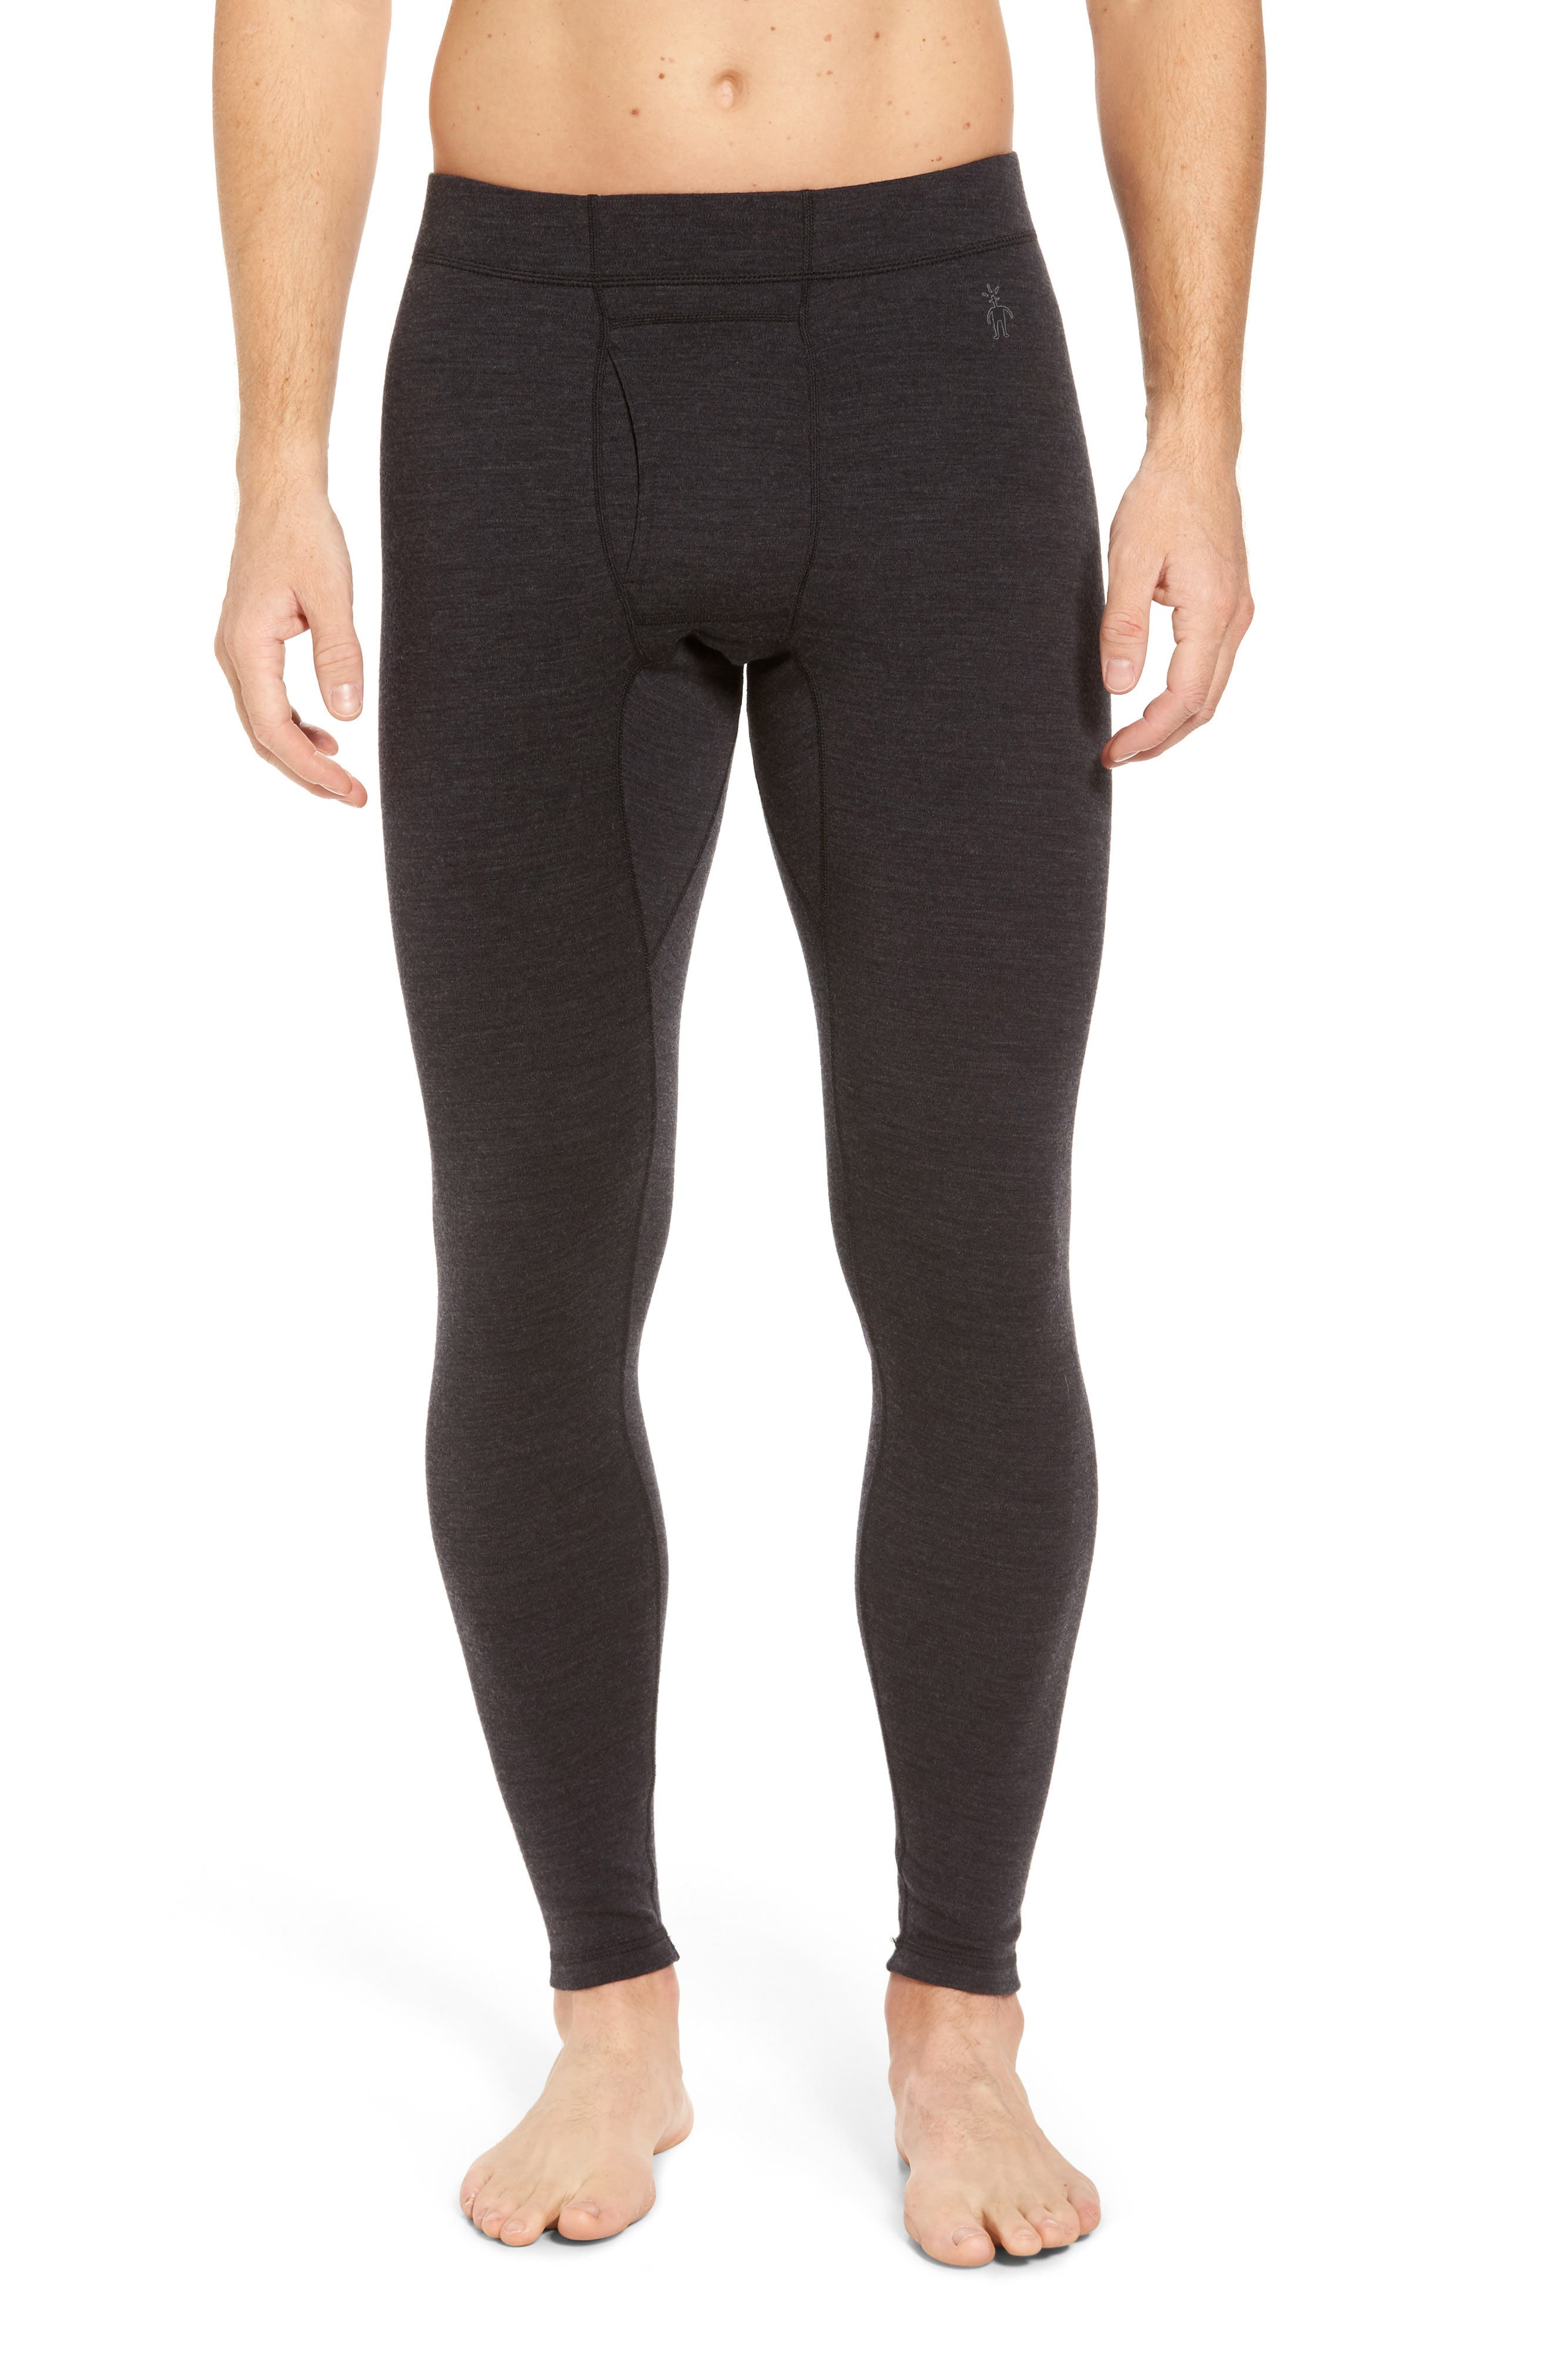 SMARTWOOL Merino 250 Base Layer Bottoms, Main, color, CHARCOAL HEATHER